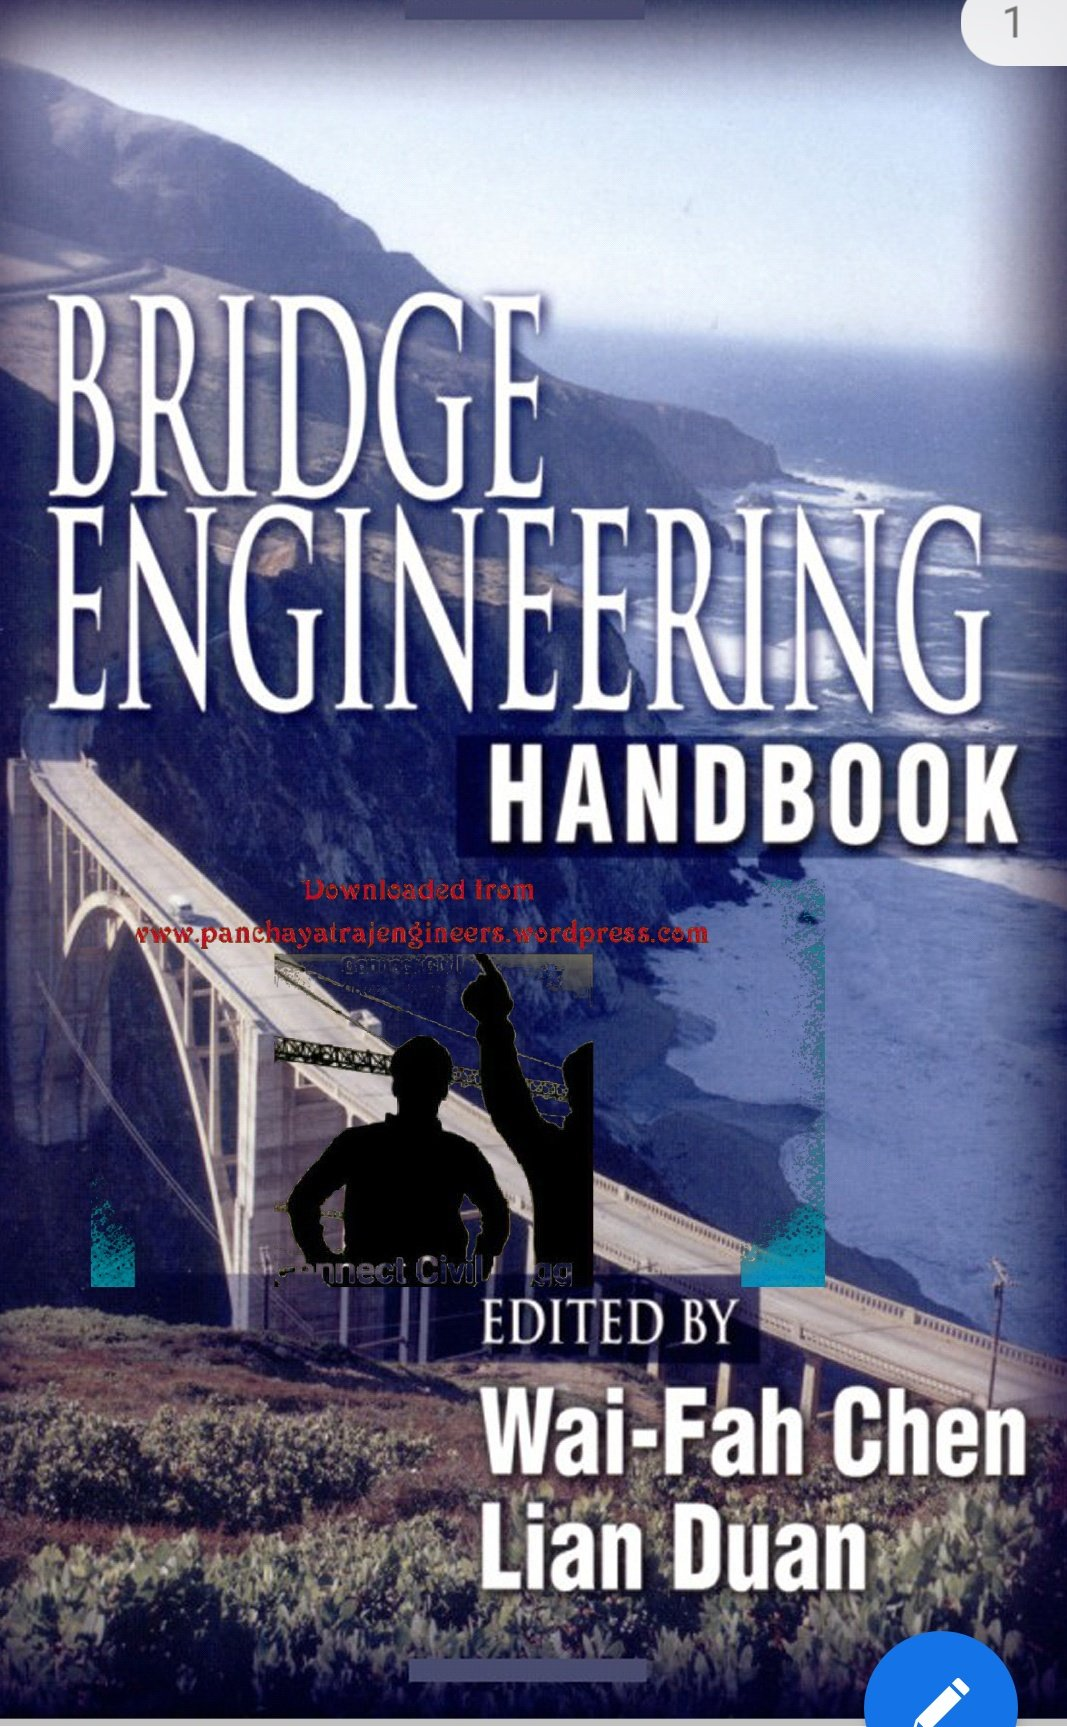 Bridge Engineering Handbook Pdf